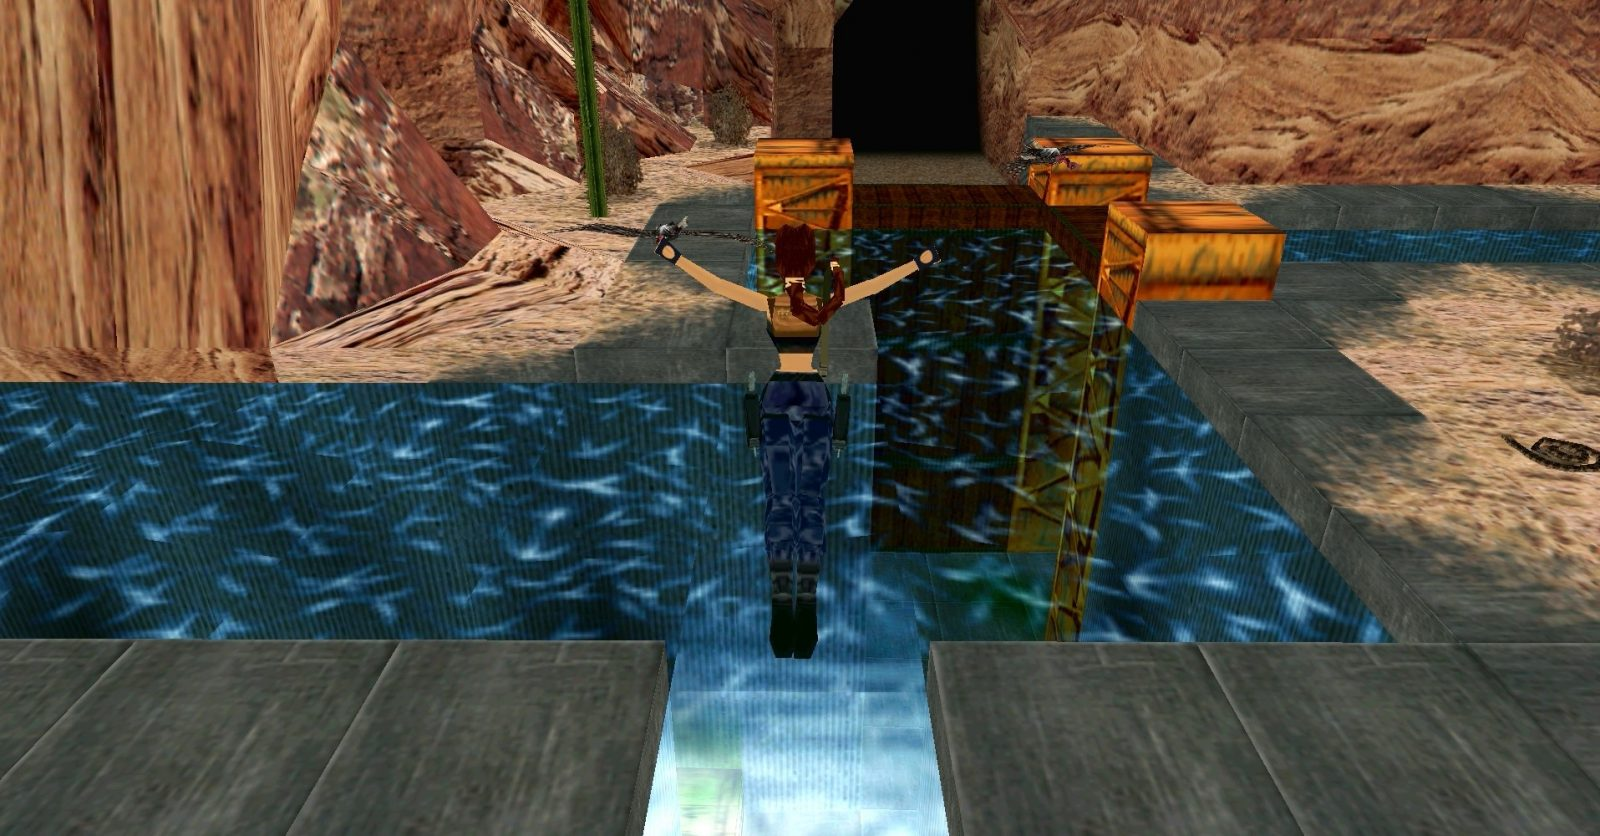 Screen Cap from Lara Croft: Tomb Raider III, Square Enix, via raidingtheglobe.com